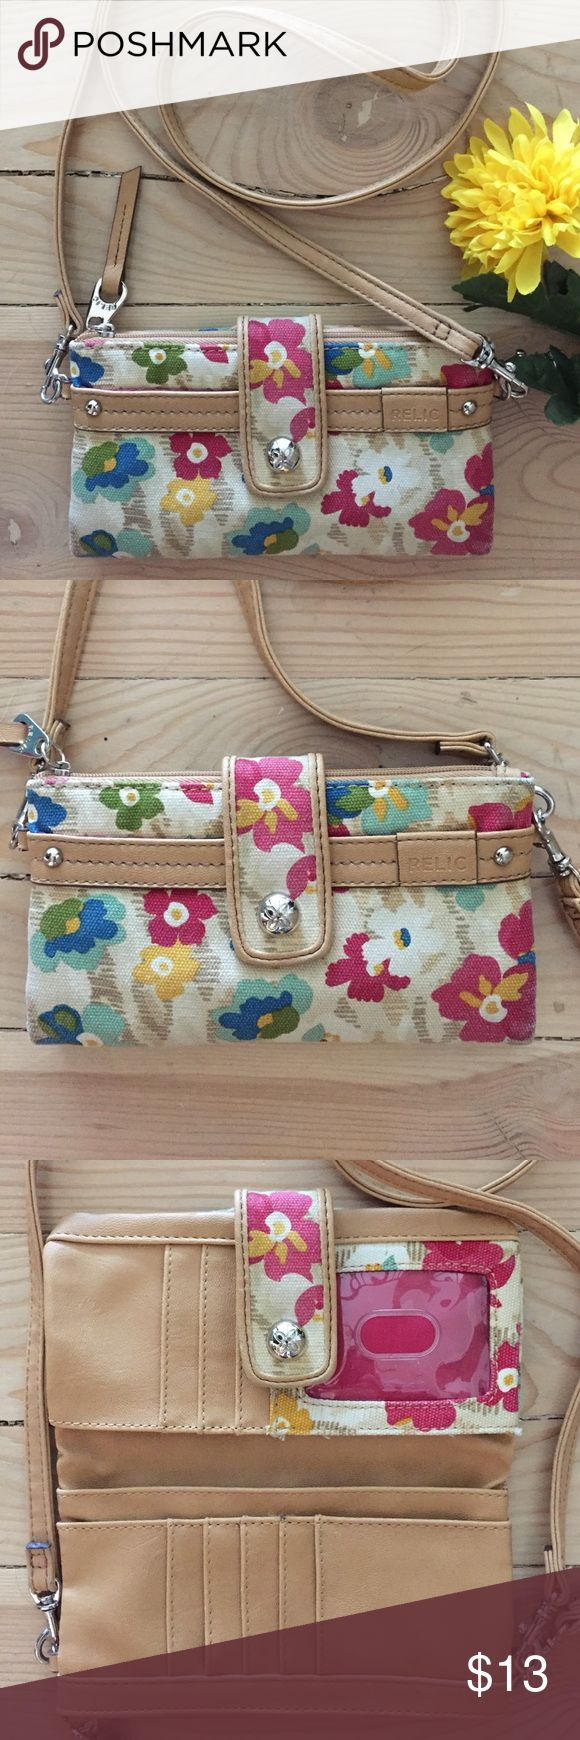 Relic Crossbody Wallet Adorable Relic crossbody wallet.  No flaws or stains.  In excellent condition. Relic Bags